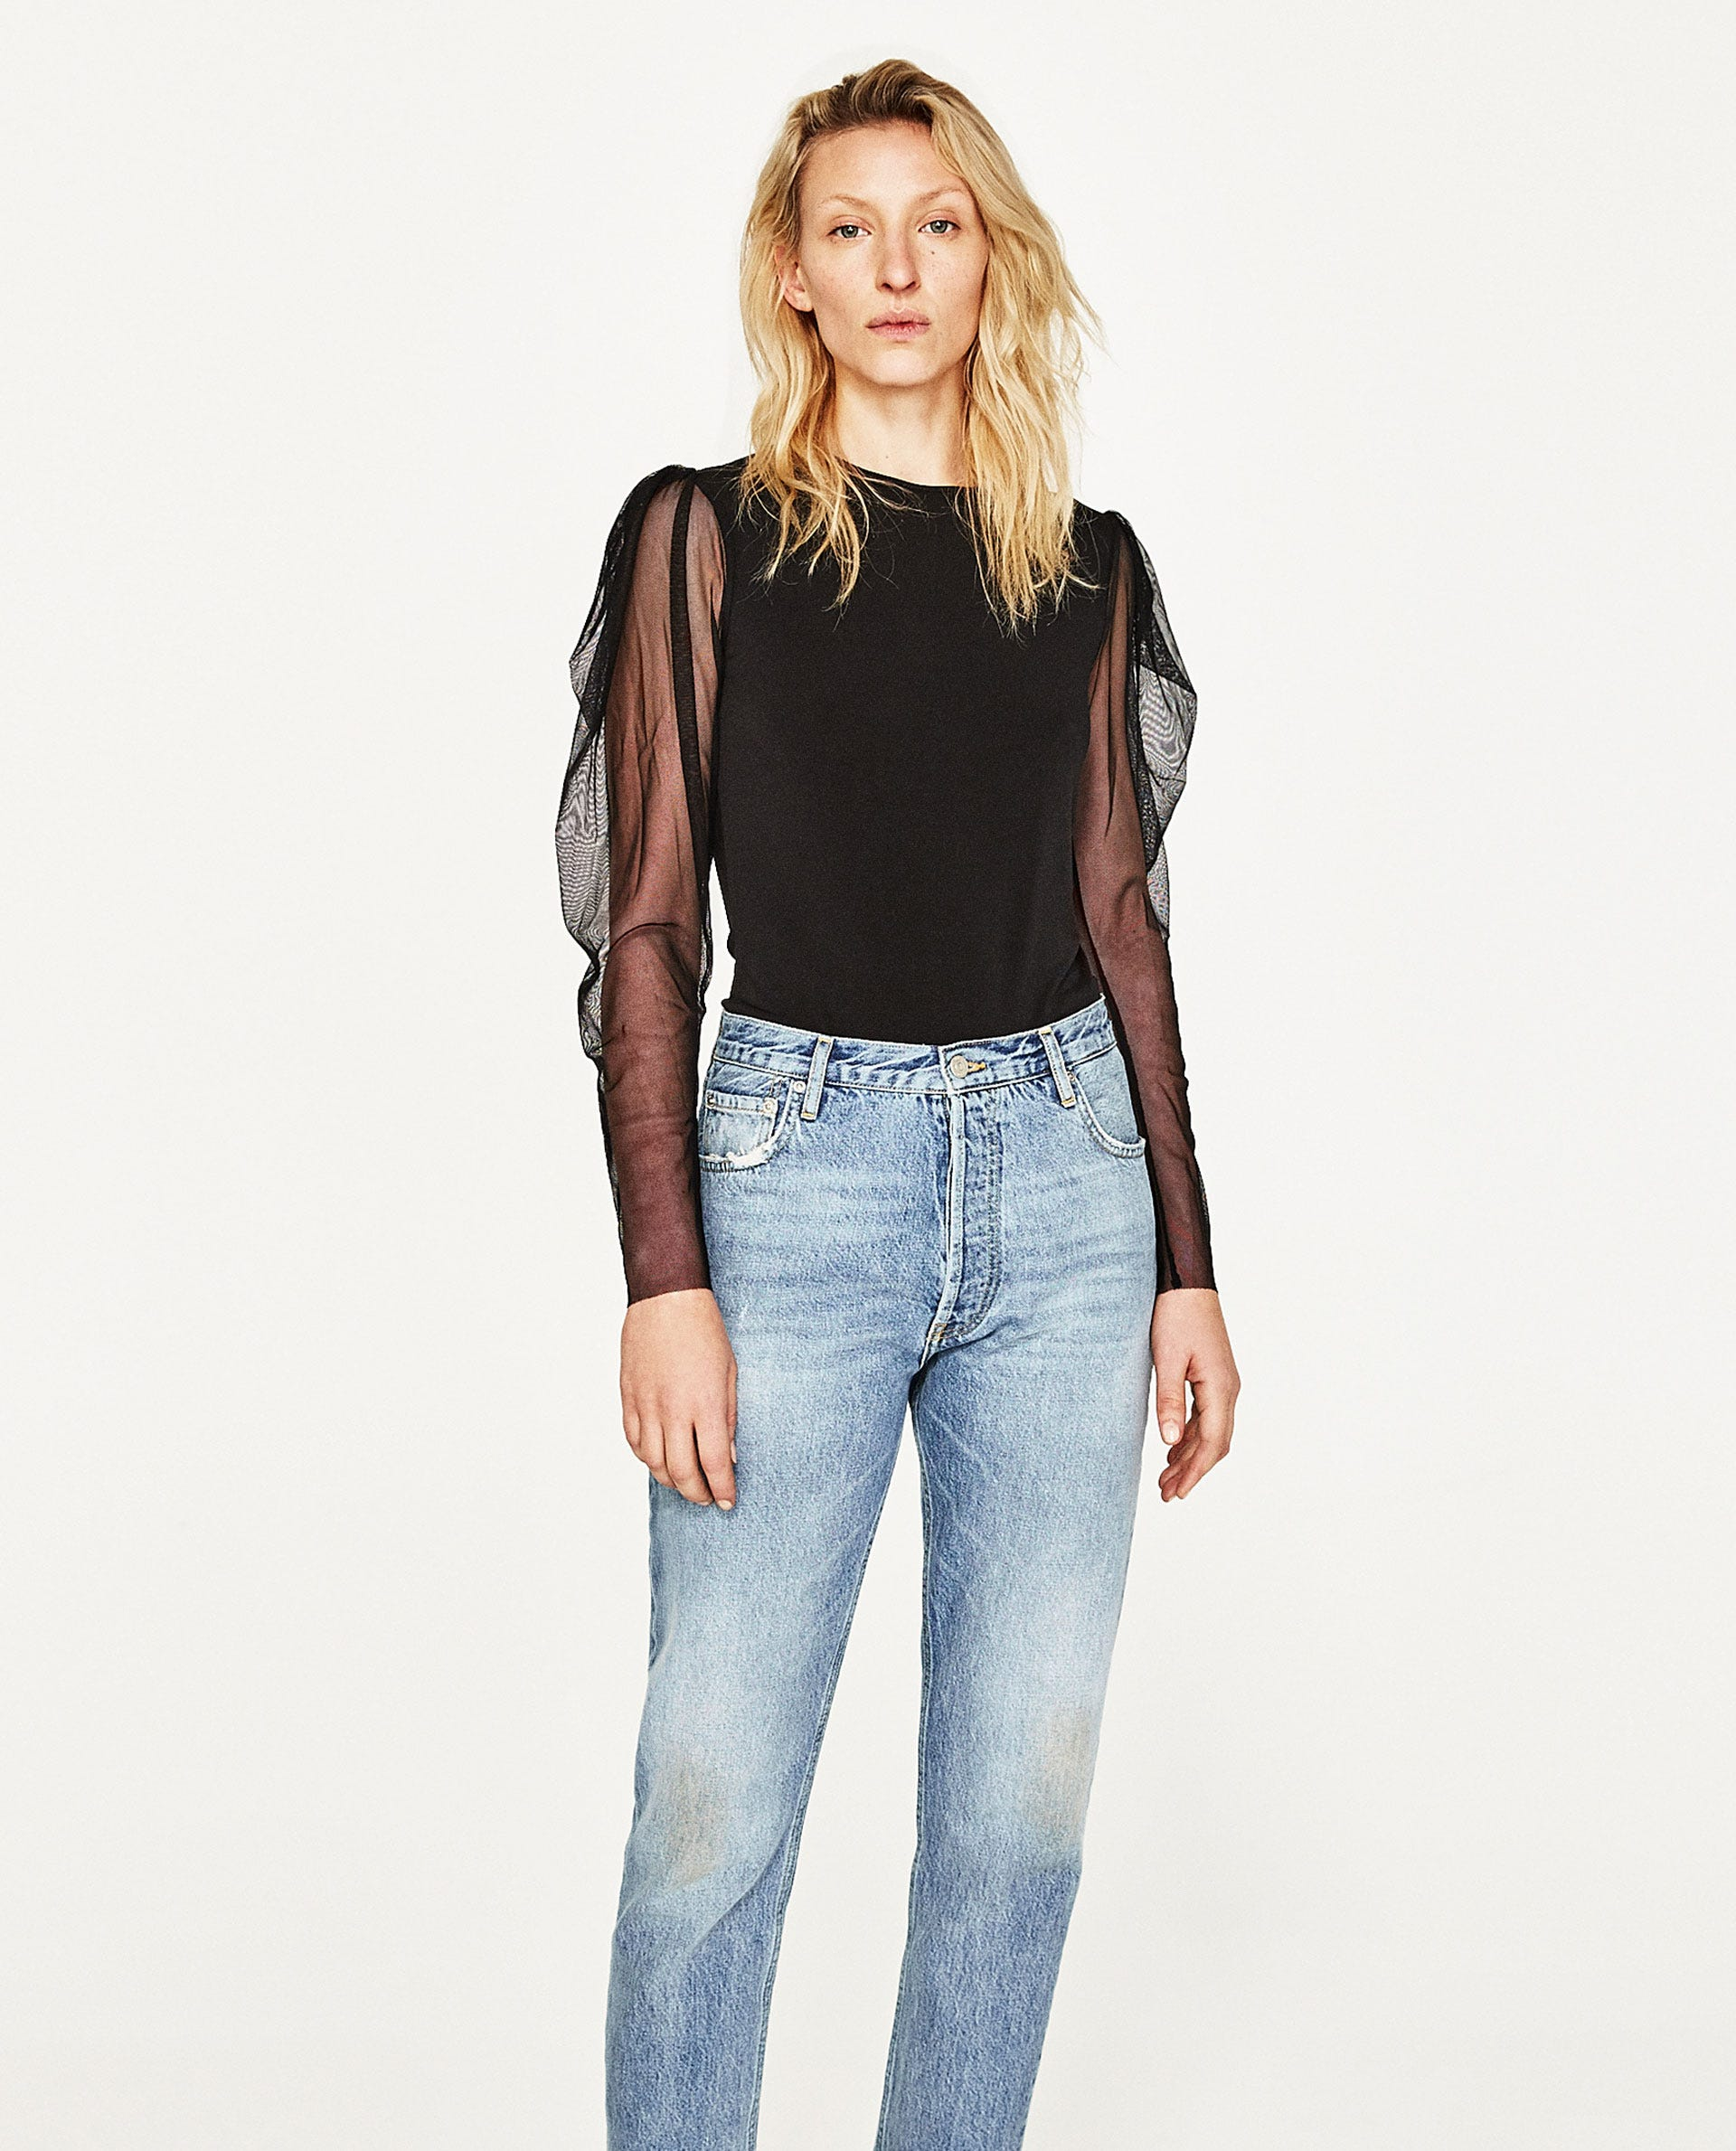 a2ad255c9f8f Zara Spring 2017 Collection Lookbook Pictures